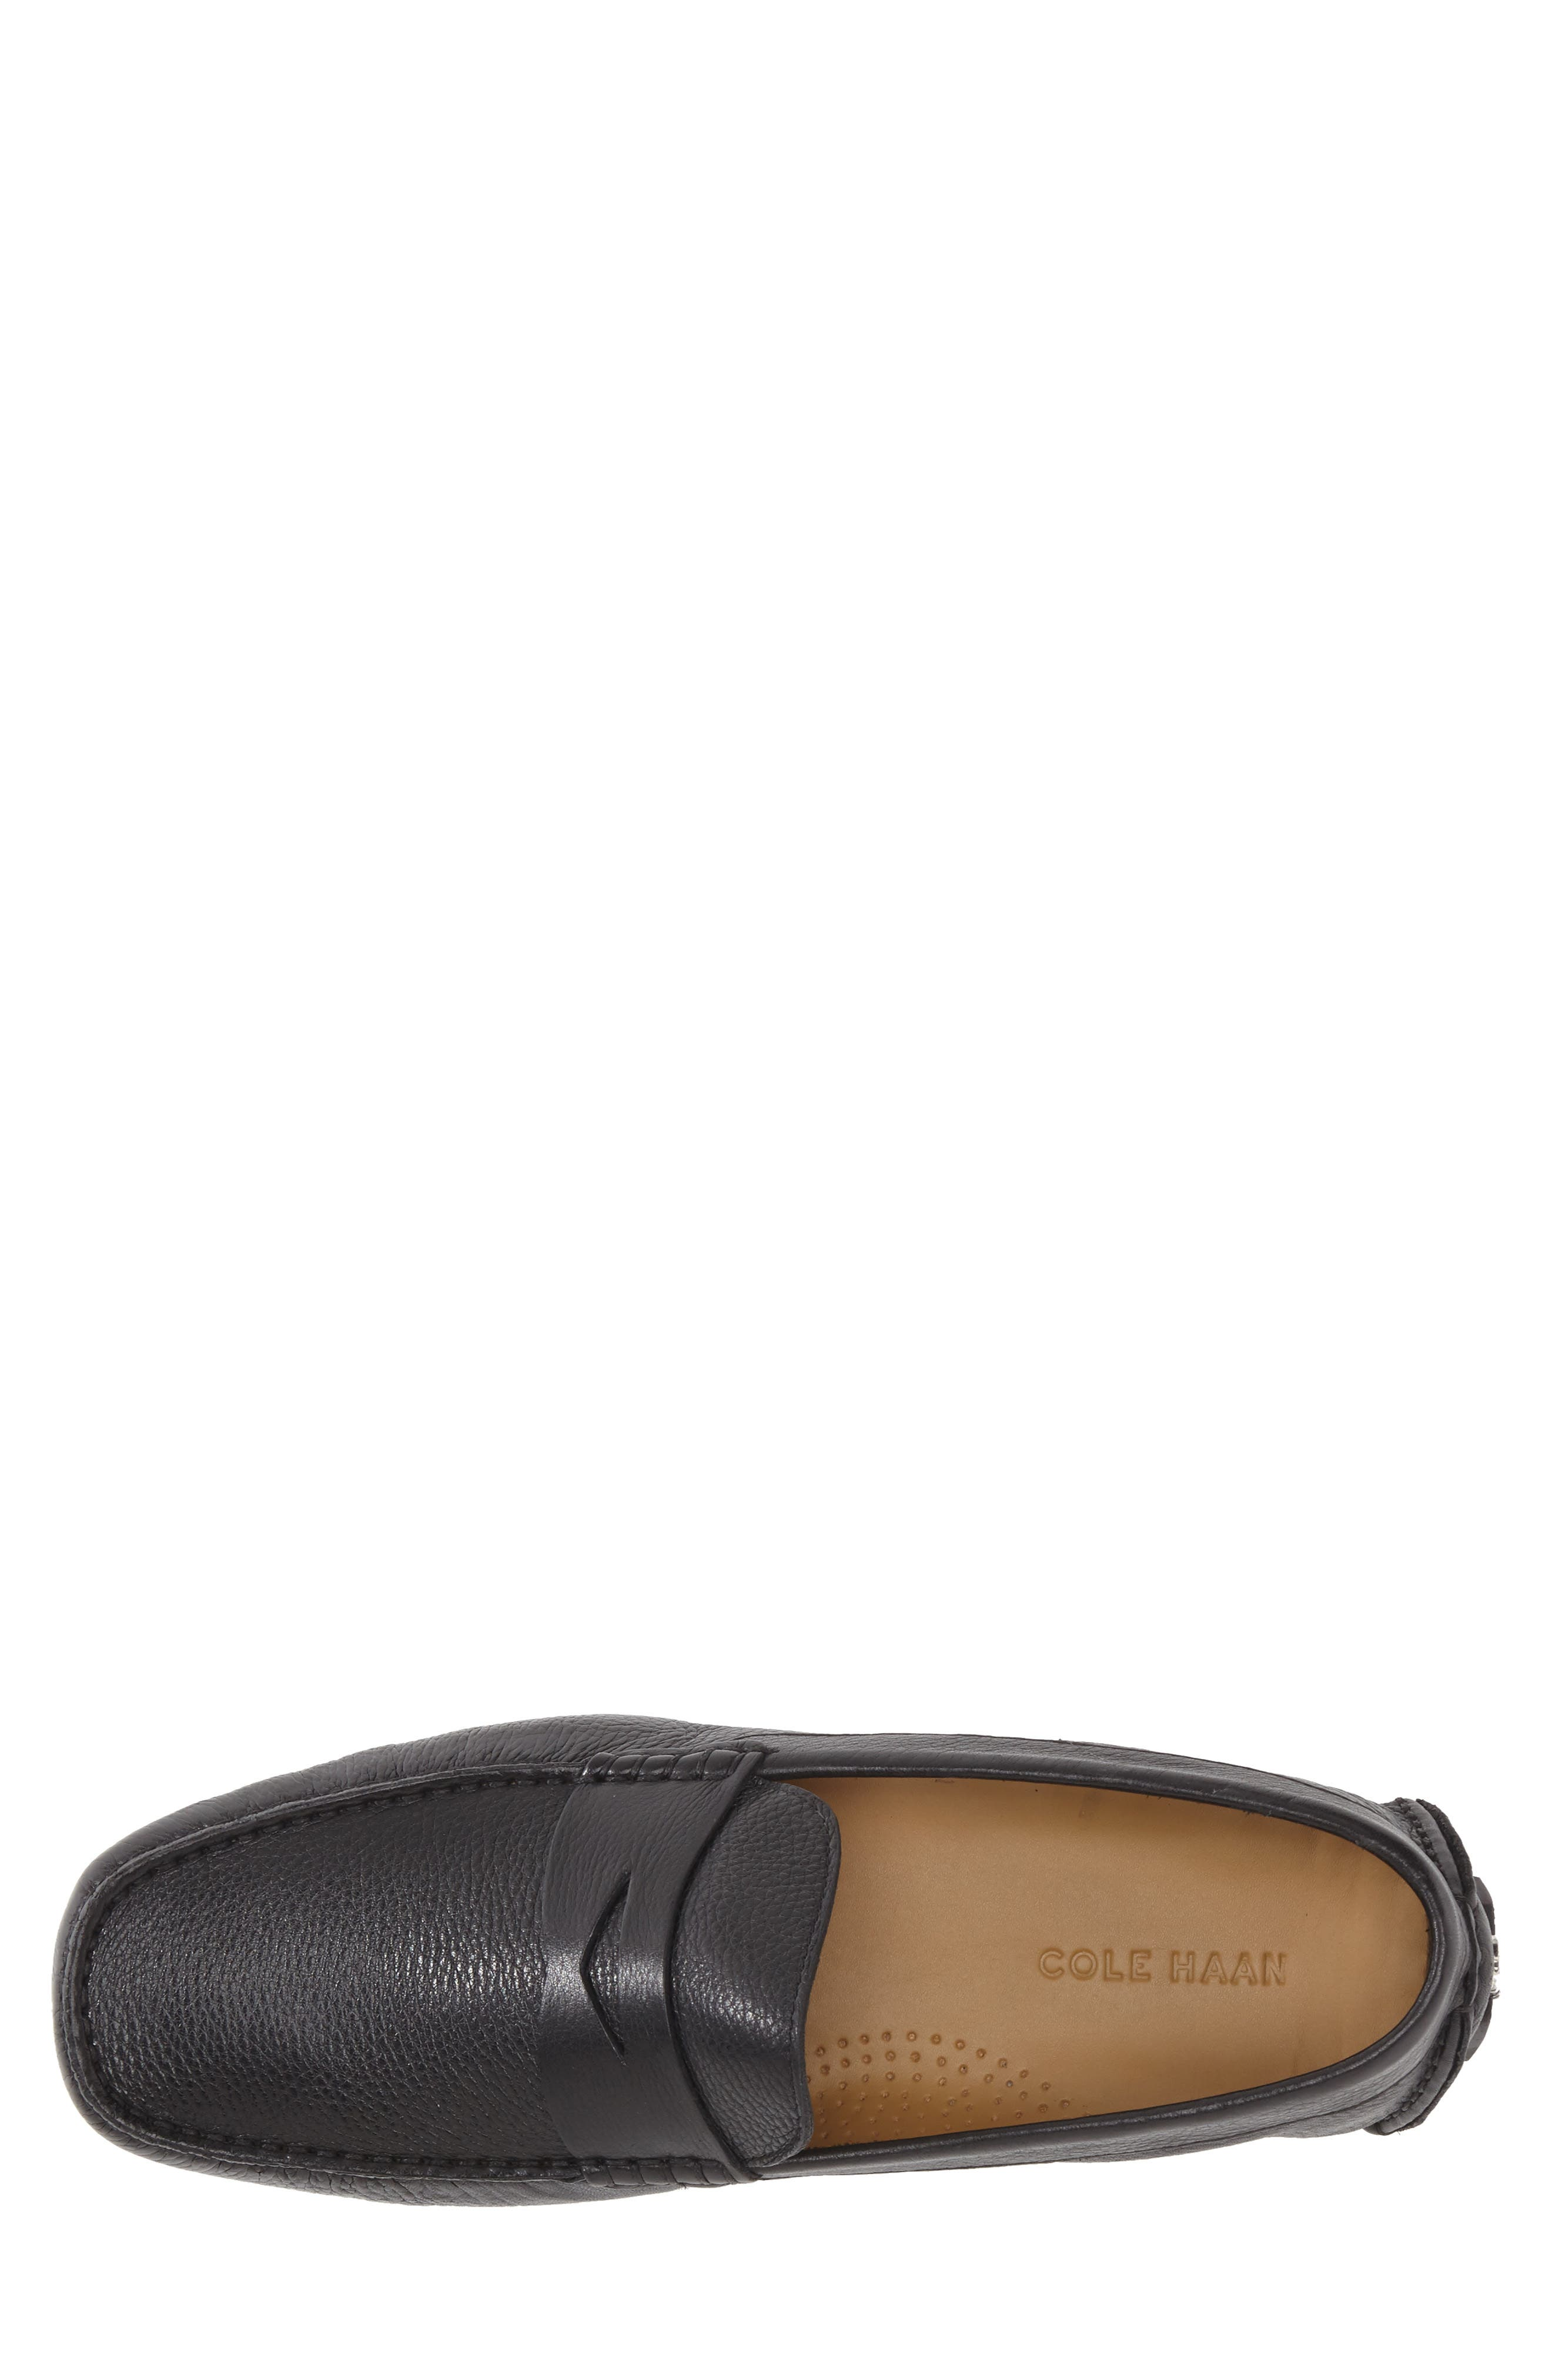 'Howland' Penny Loafer,                             Alternate thumbnail 8, color,                             BLACK TUMBLED